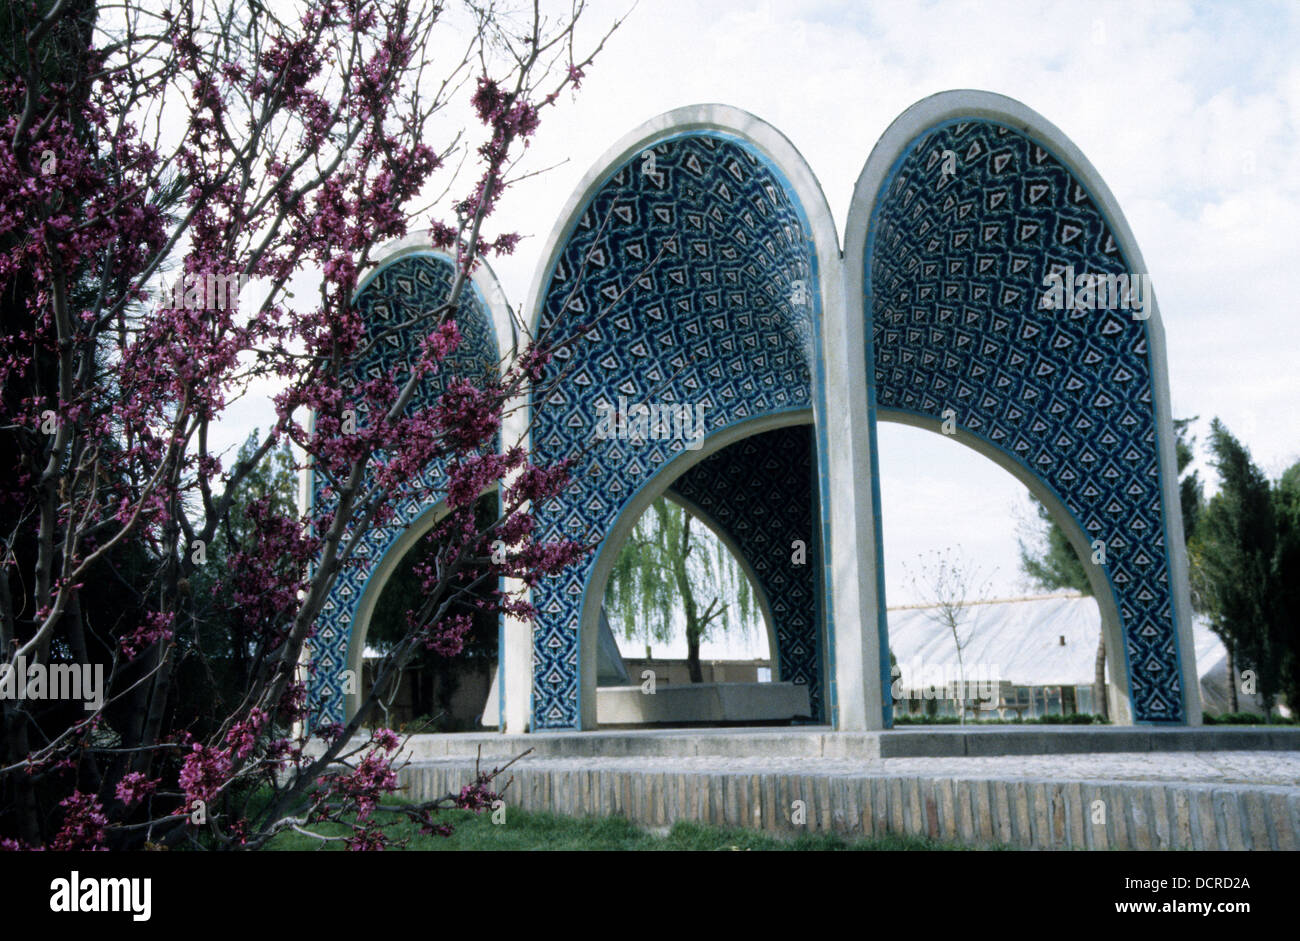 The Poets' Garden with tomb of 12th century poet Kamal al Molk in Neishapour Khorasan, Province, Iran Stock Photo